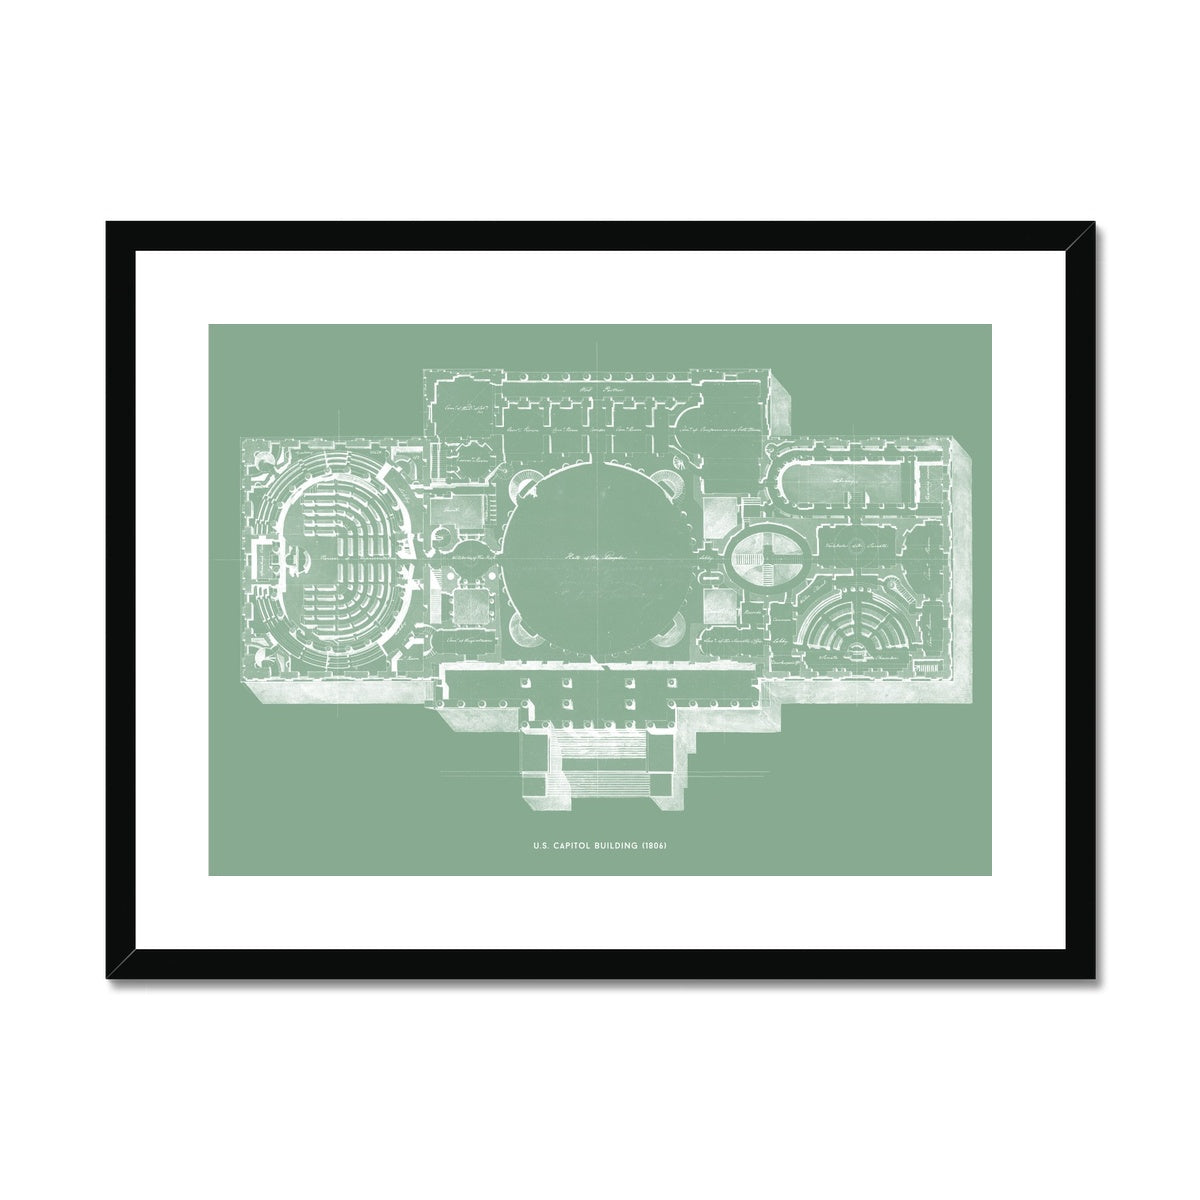 The U.S. Capitol Building - 1806 Floorplan - Green -  Framed & Mounted Print